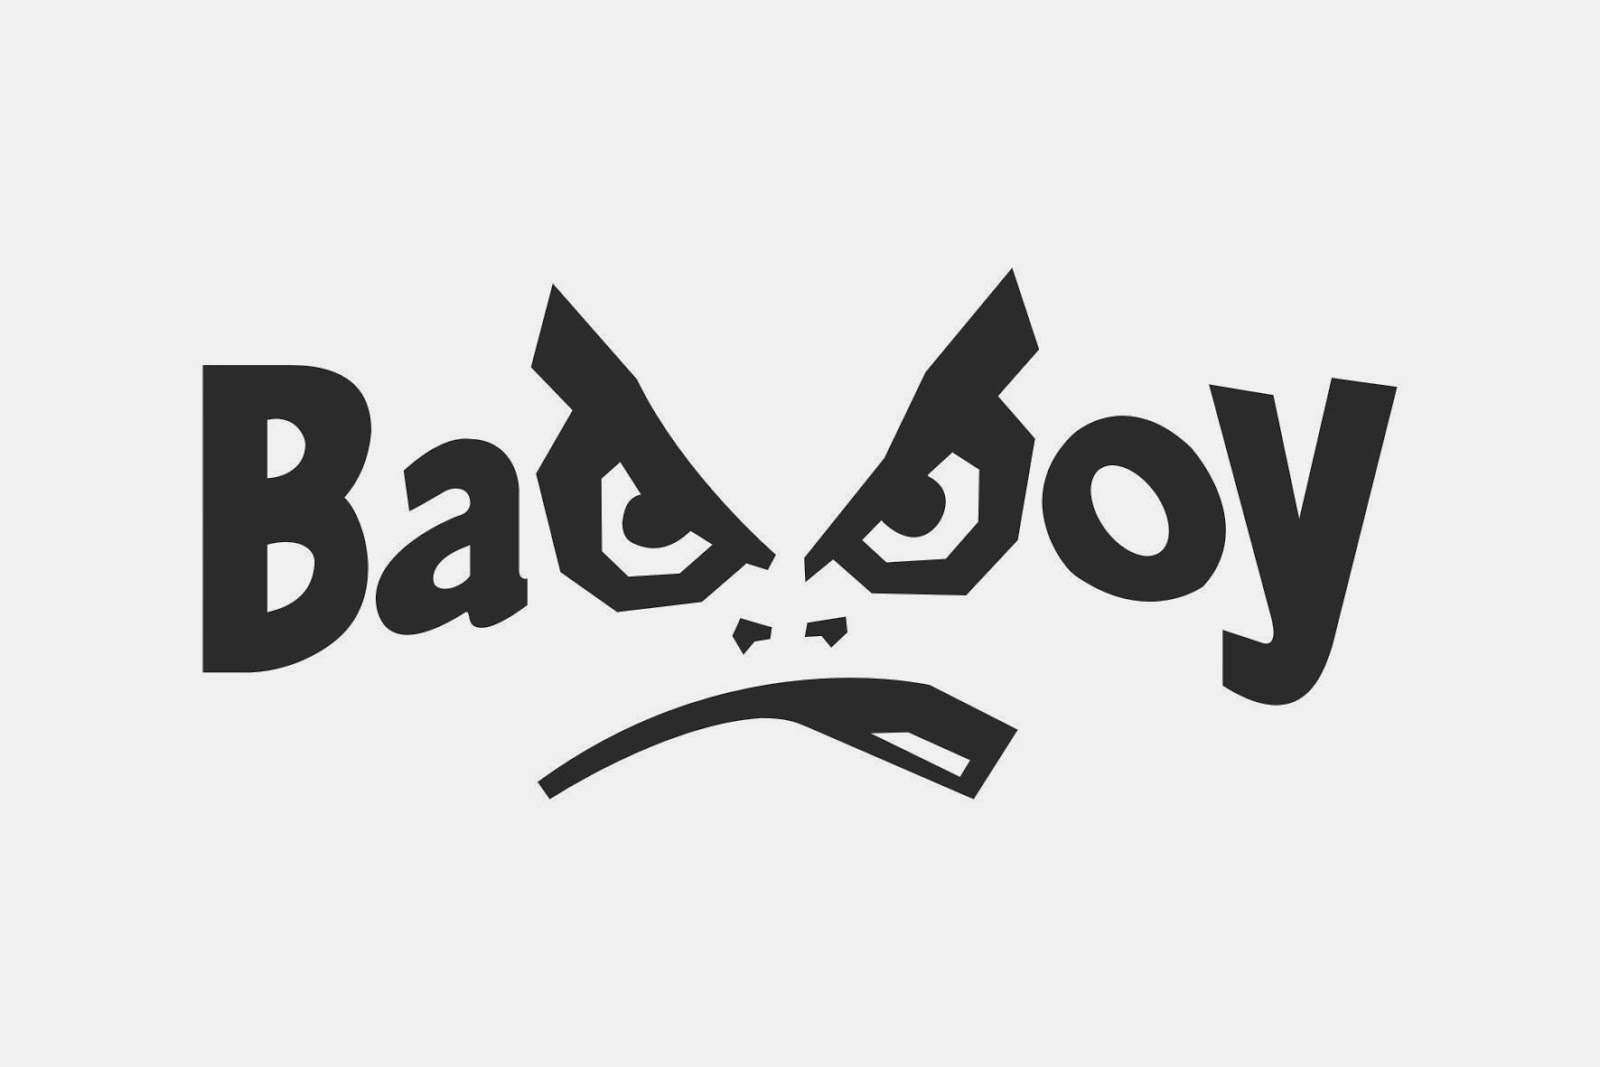 bad boy logo logoshare